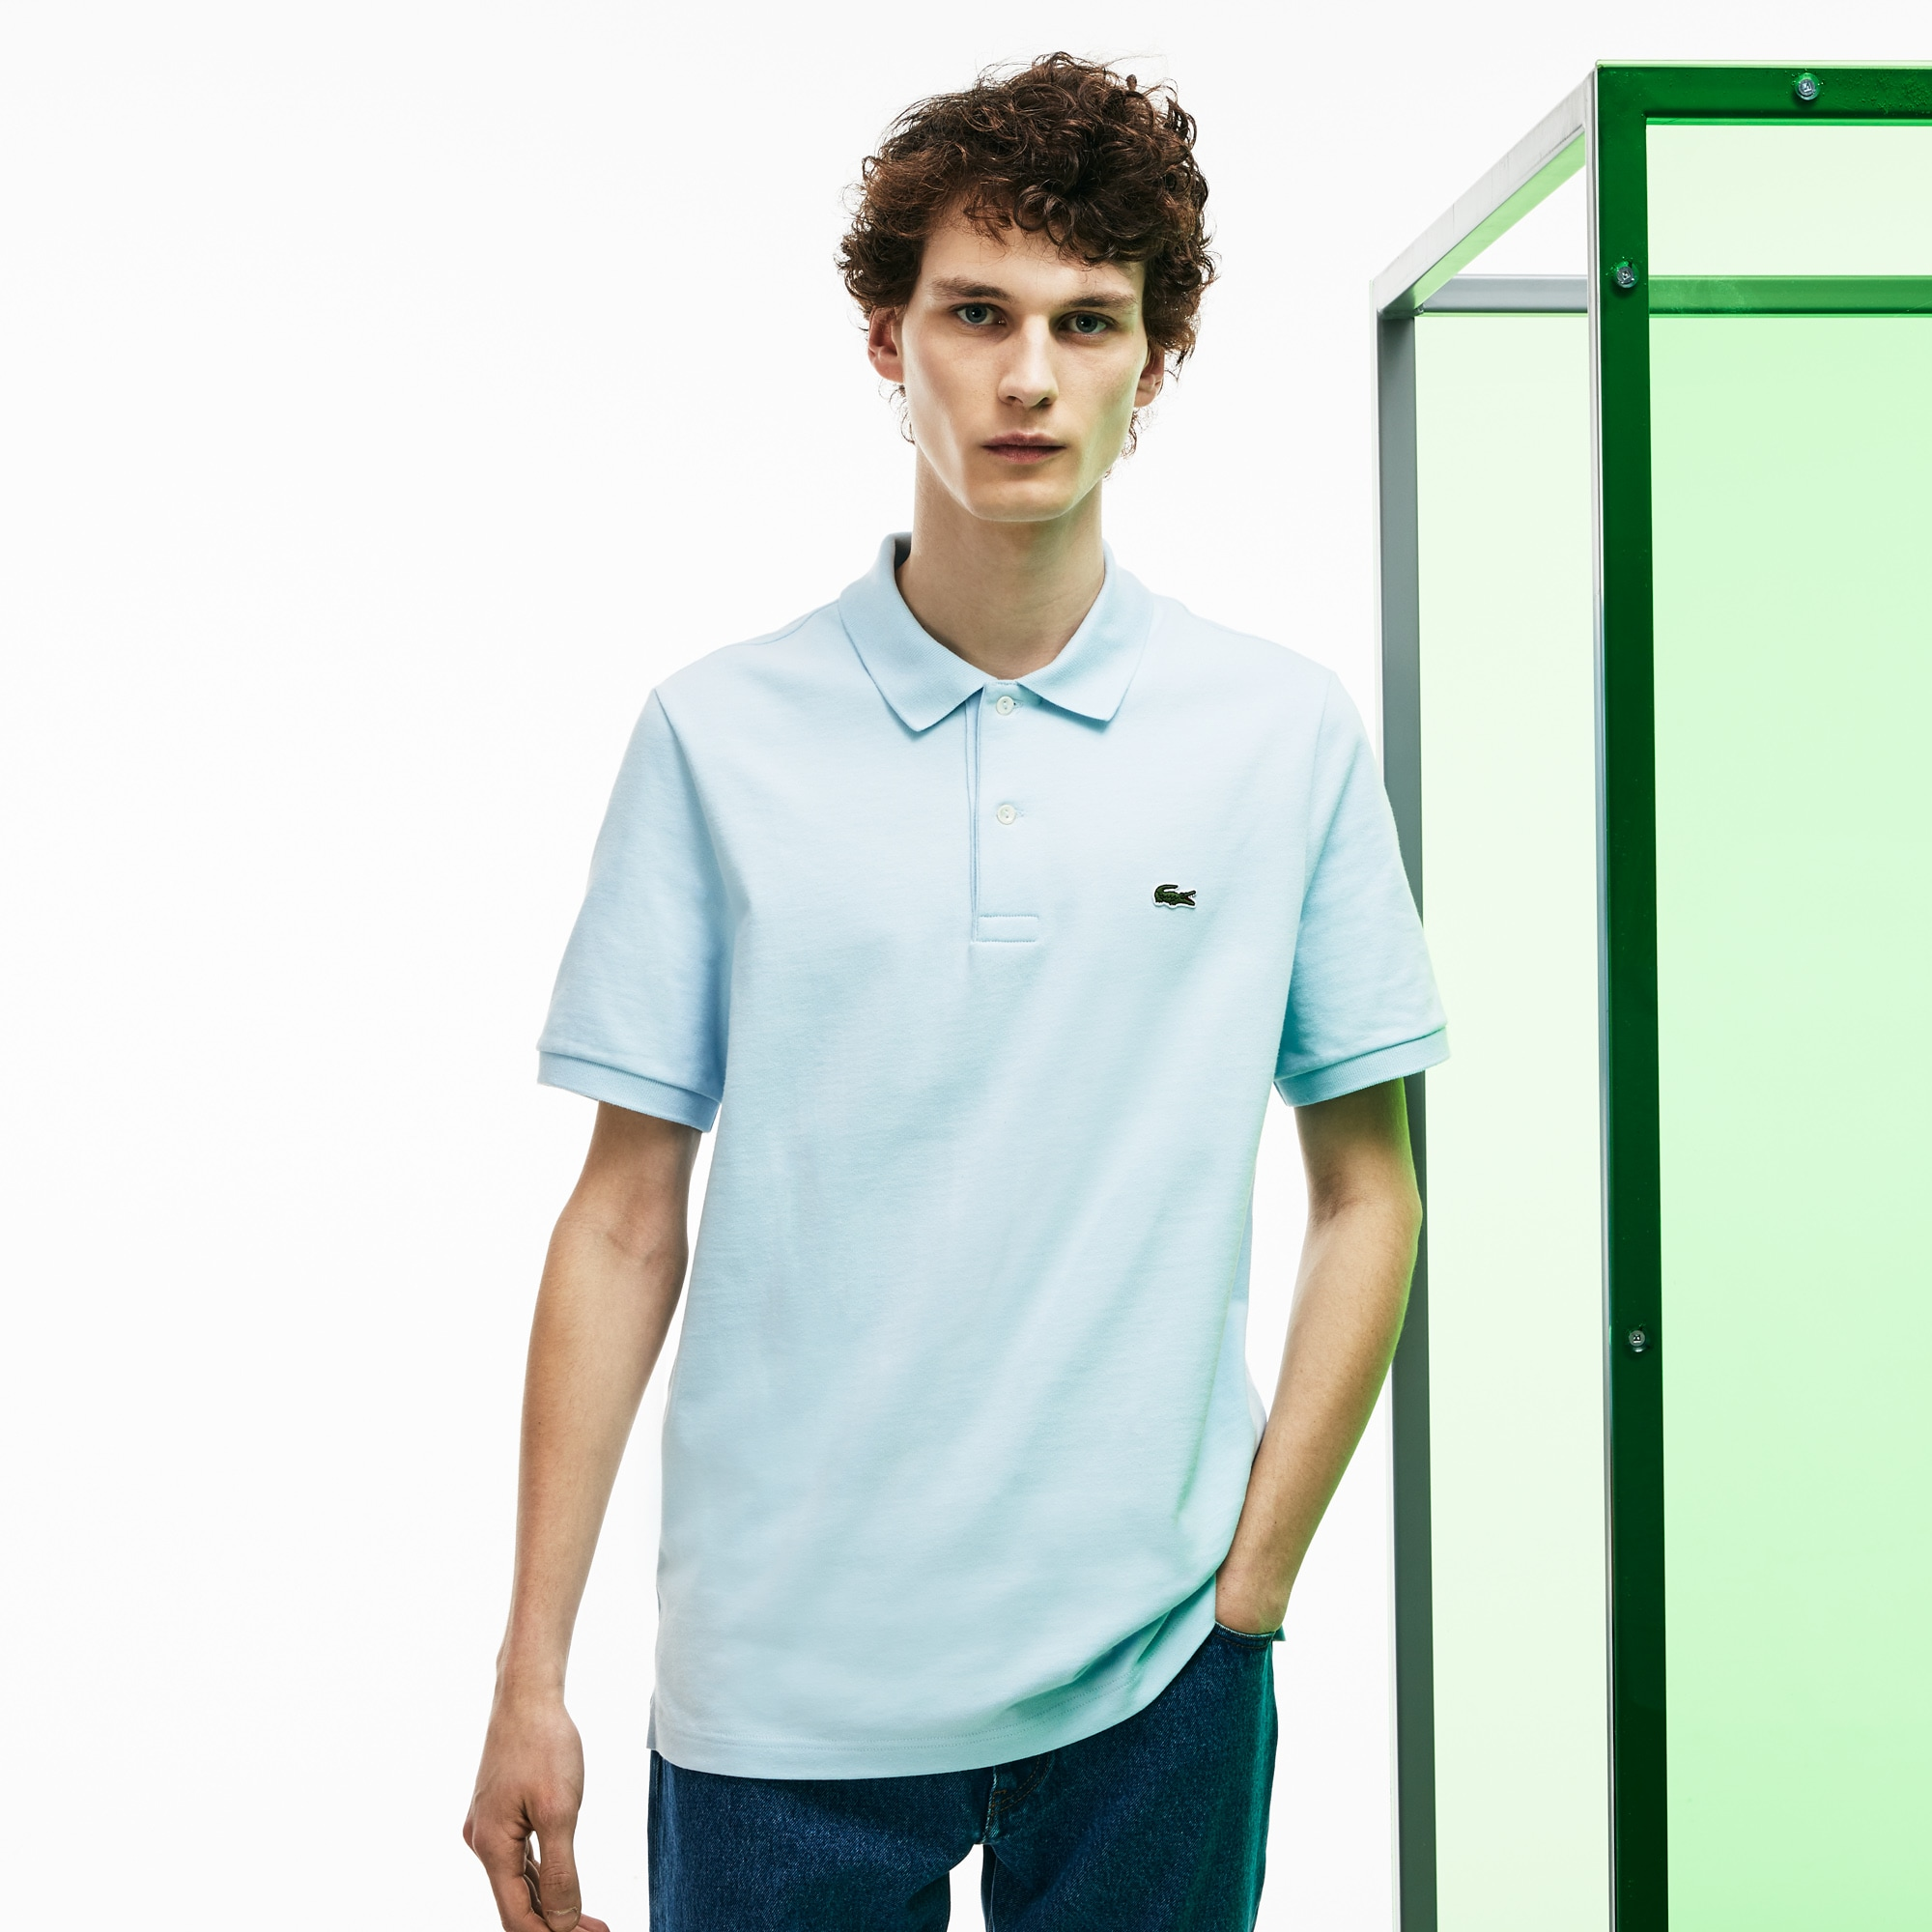 Men's Lacoste Fashion Show Thick Cotton Jersey Polo